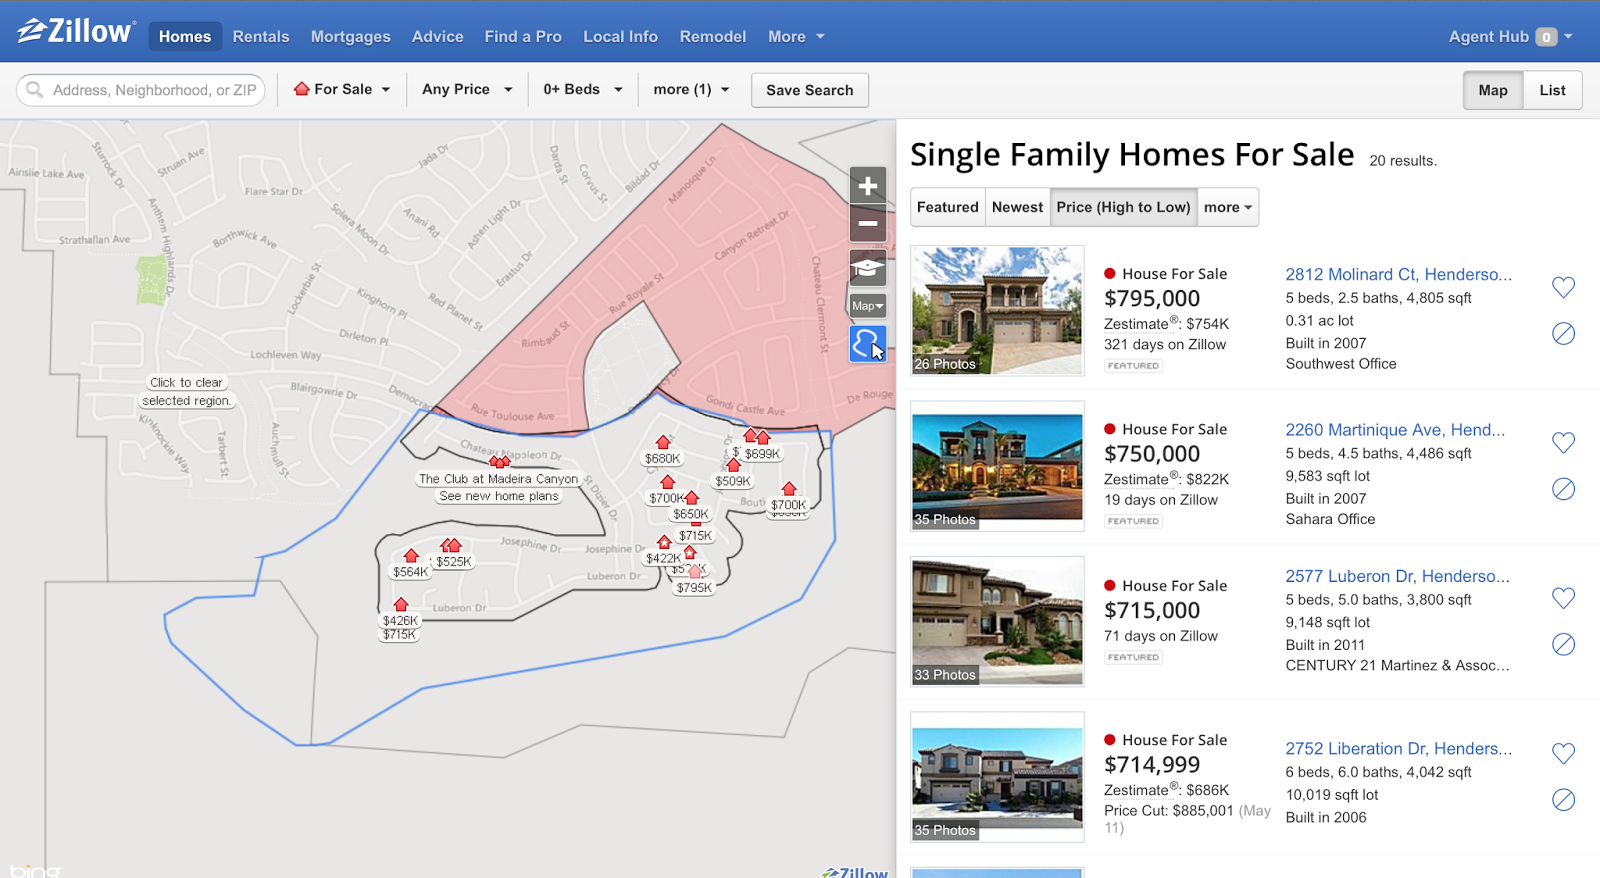 Is Zillow Bad for Home Buyers? on high quality maps, teaching maps, mapquest maps, alternate history maps, spanish speaking maps, expedia maps, pathfinder rpg maps, microsoft maps, groundwater maps, social studies maps, tumblr maps, civilization 5 maps, local maps, pictometry maps, jones soda, geoportal maps, fictional maps, walmart maps, aerial maps, yandex maps, google maps,